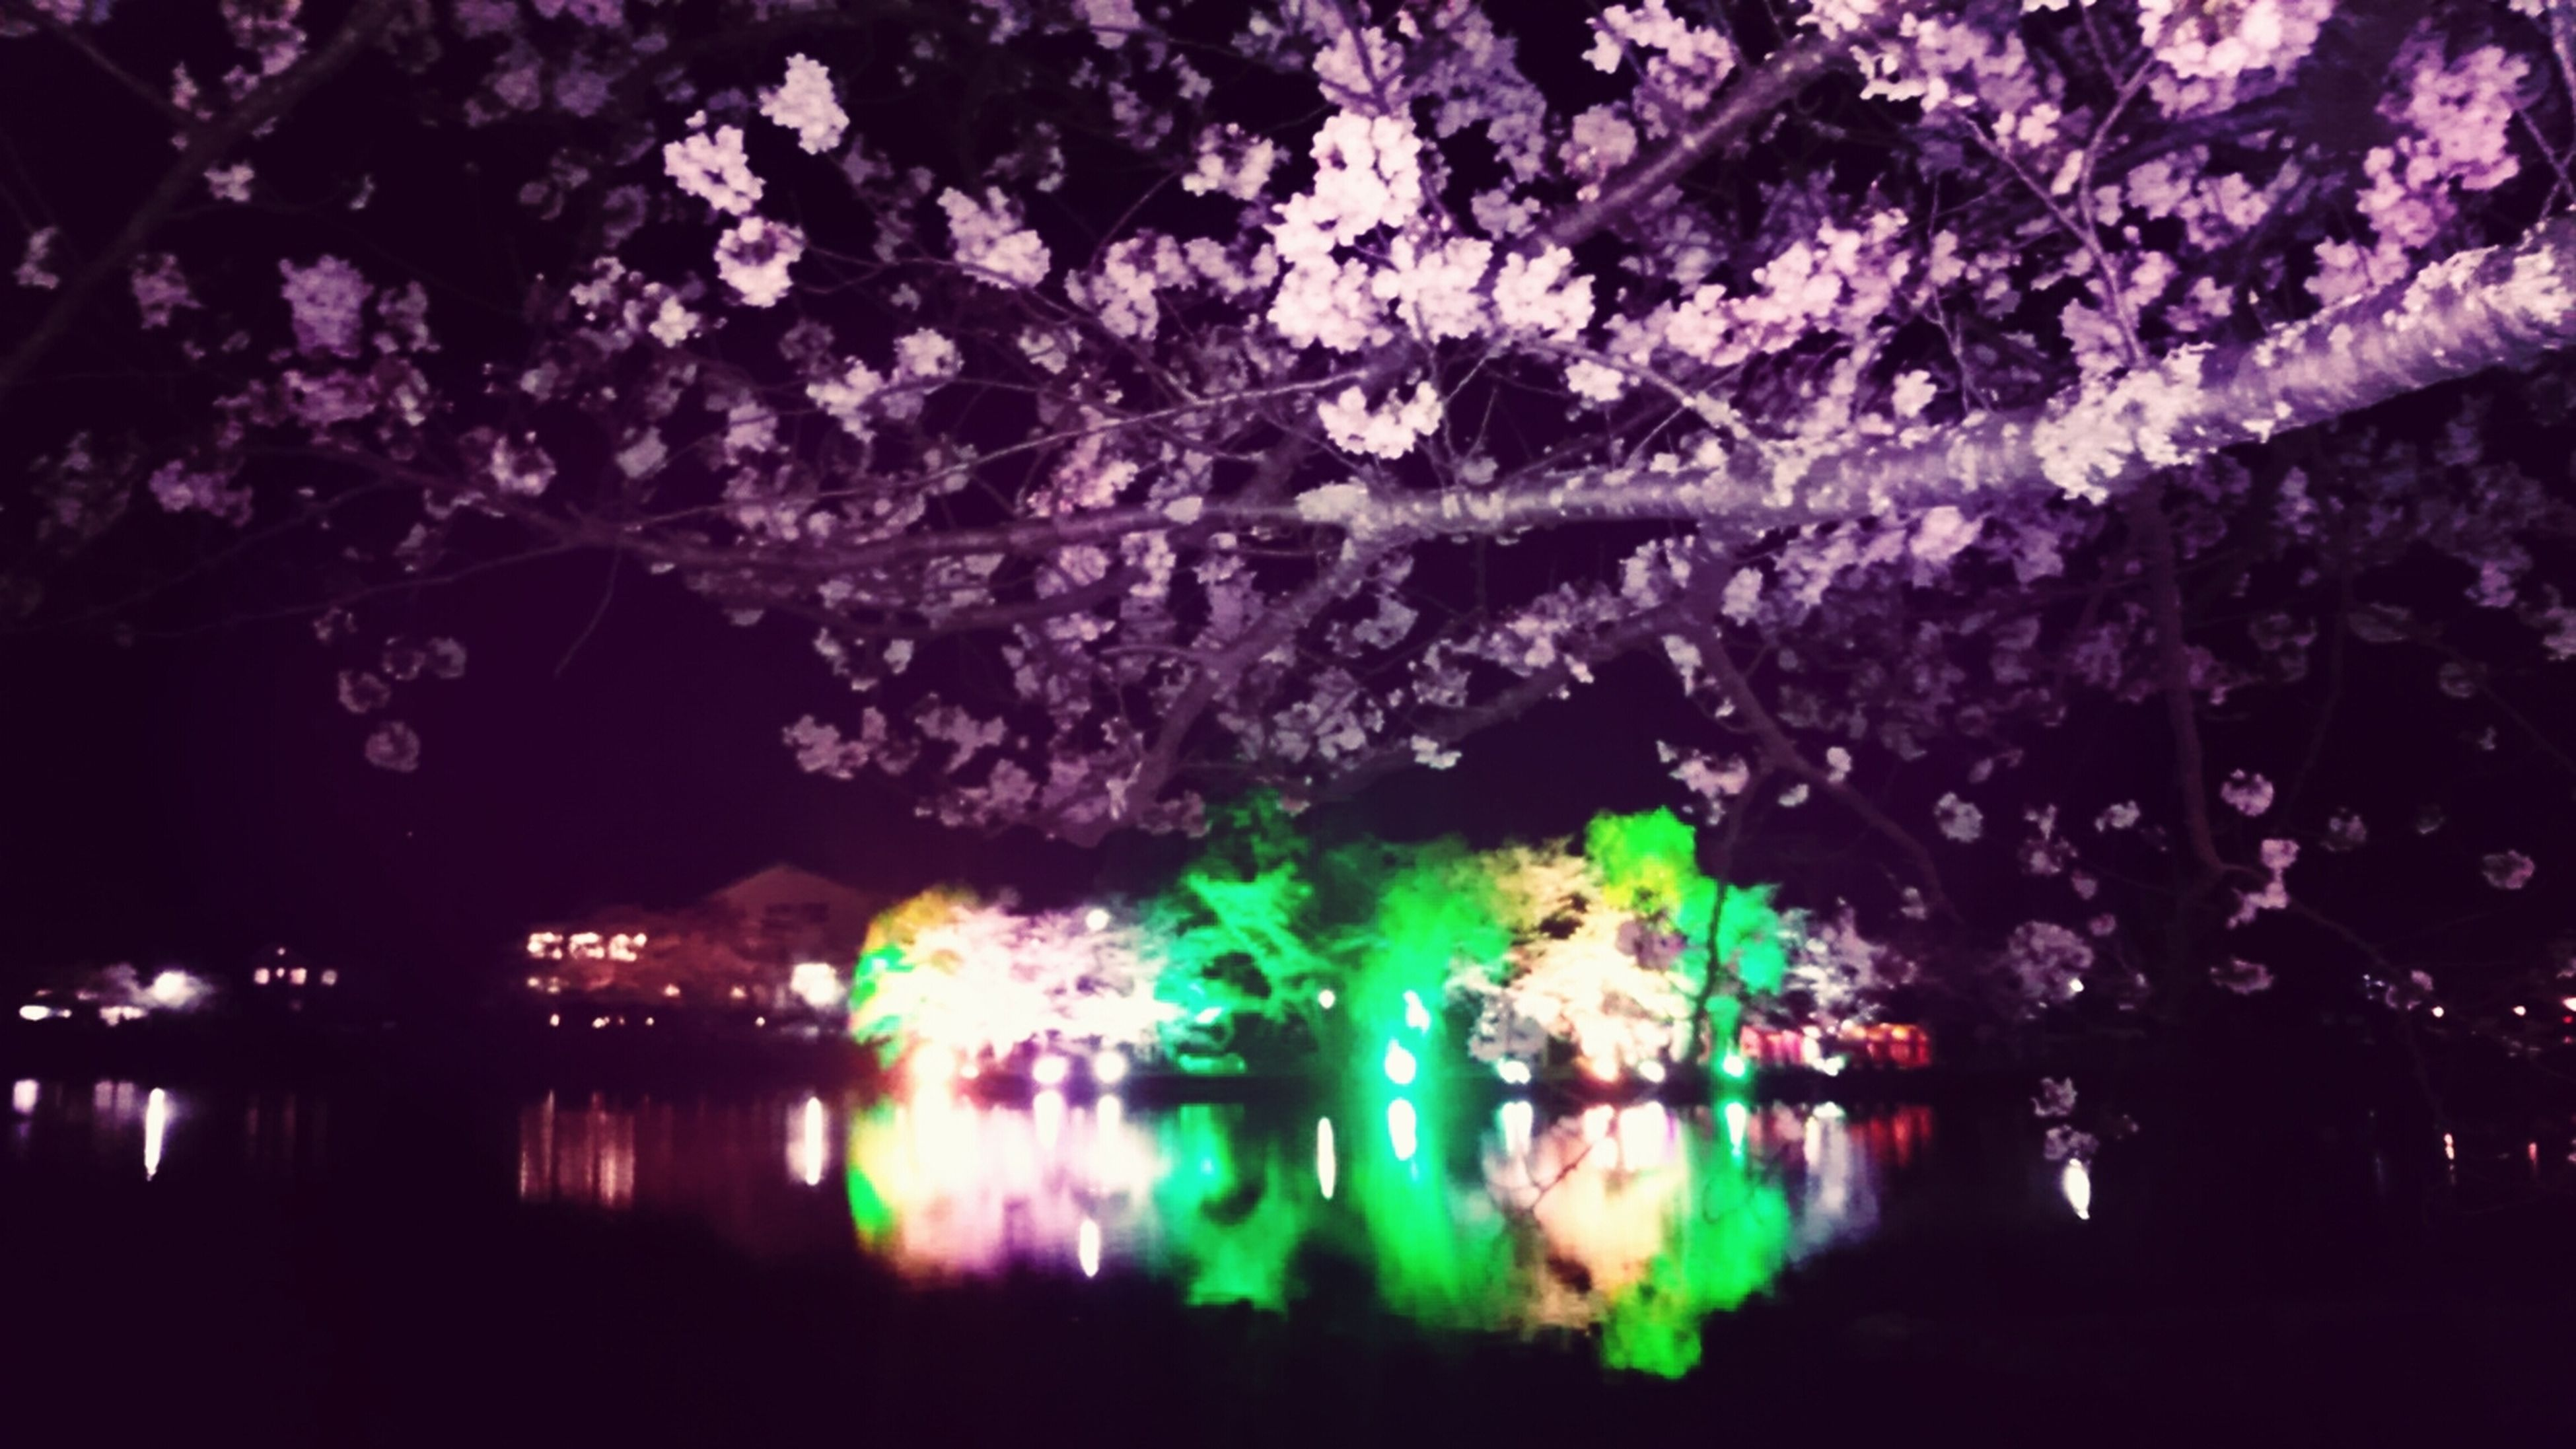 water, reflection, night, waterfront, illuminated, lake, tree, river, built structure, pond, nature, beauty in nature, architecture, outdoors, growth, tranquility, no people, building exterior, flower, branch